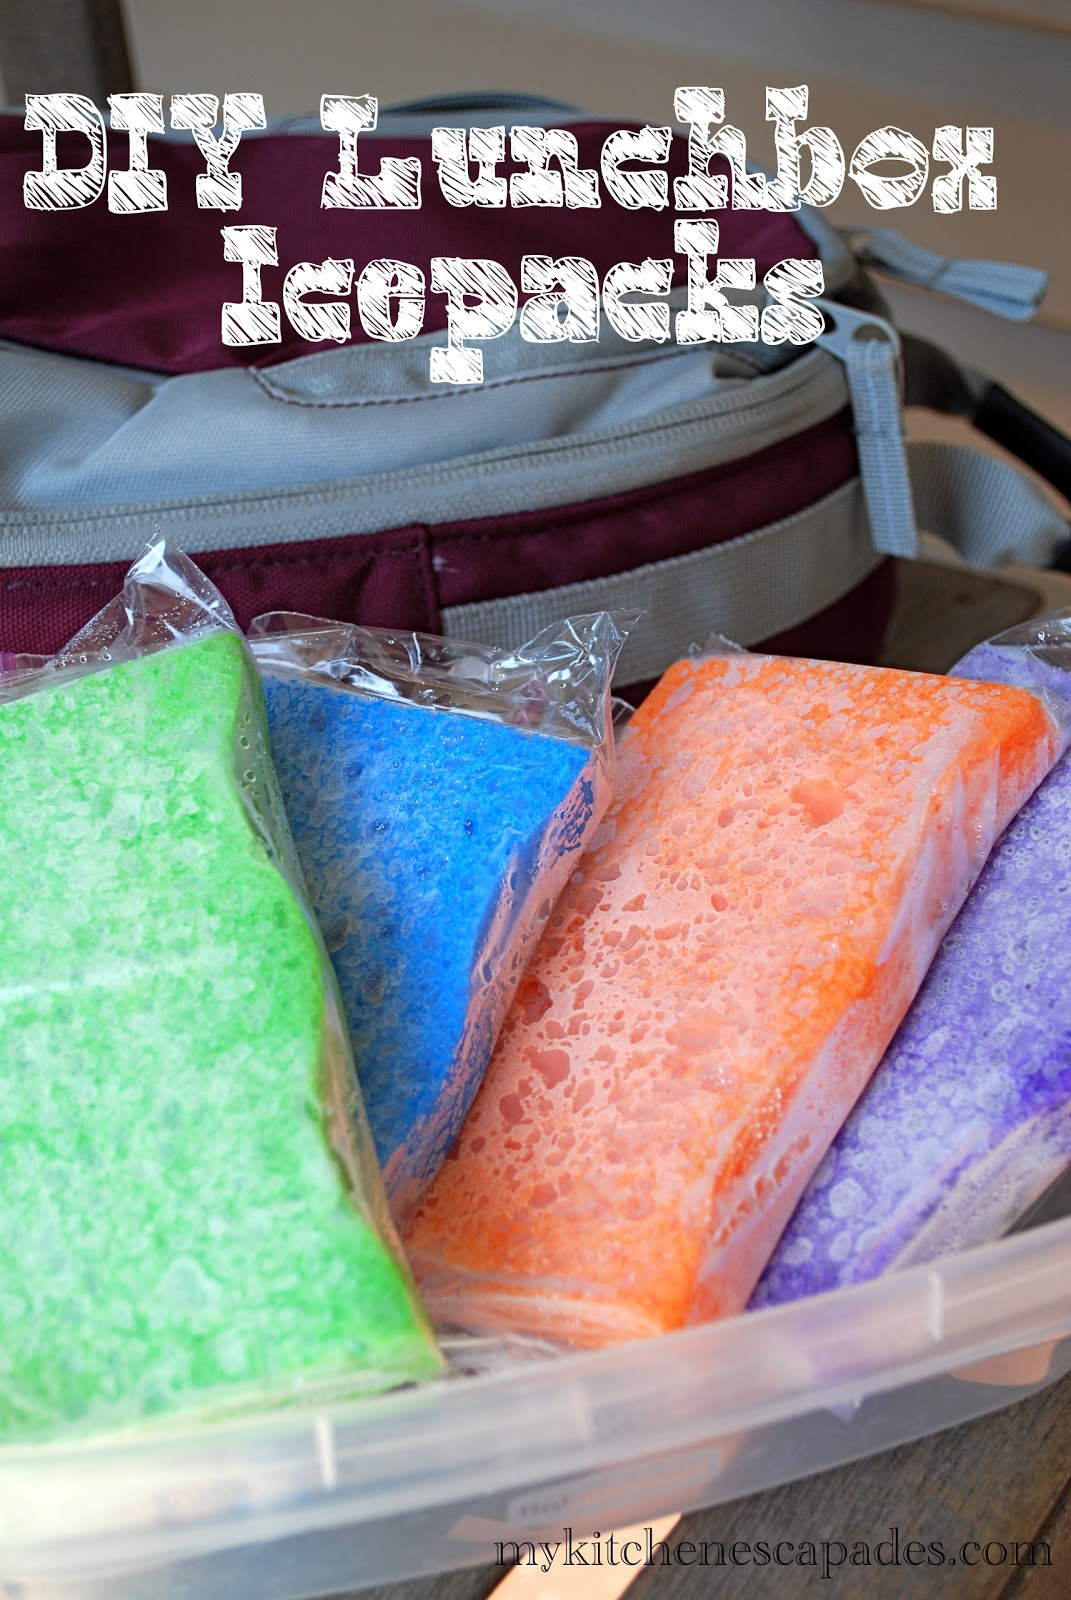 Homemade Ice Pack Diy Reusable Lunch Box Cooler